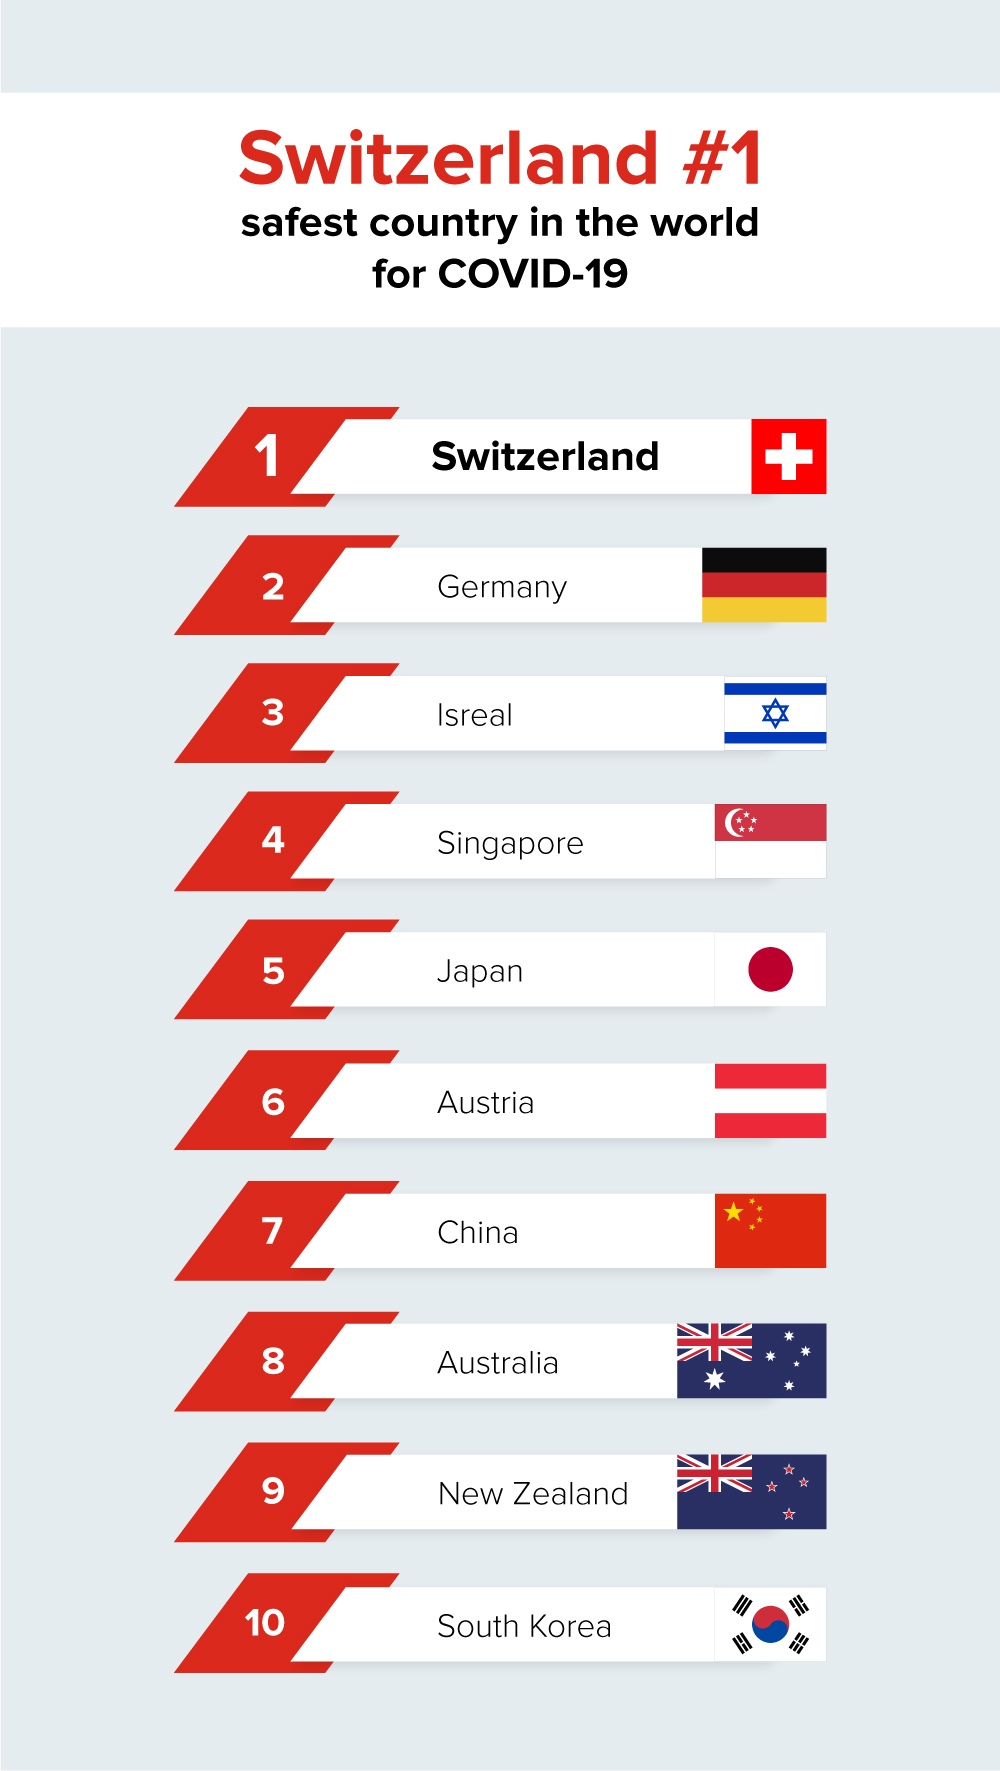 Switzerland tops the list of safest countries in the world for COVID-19.